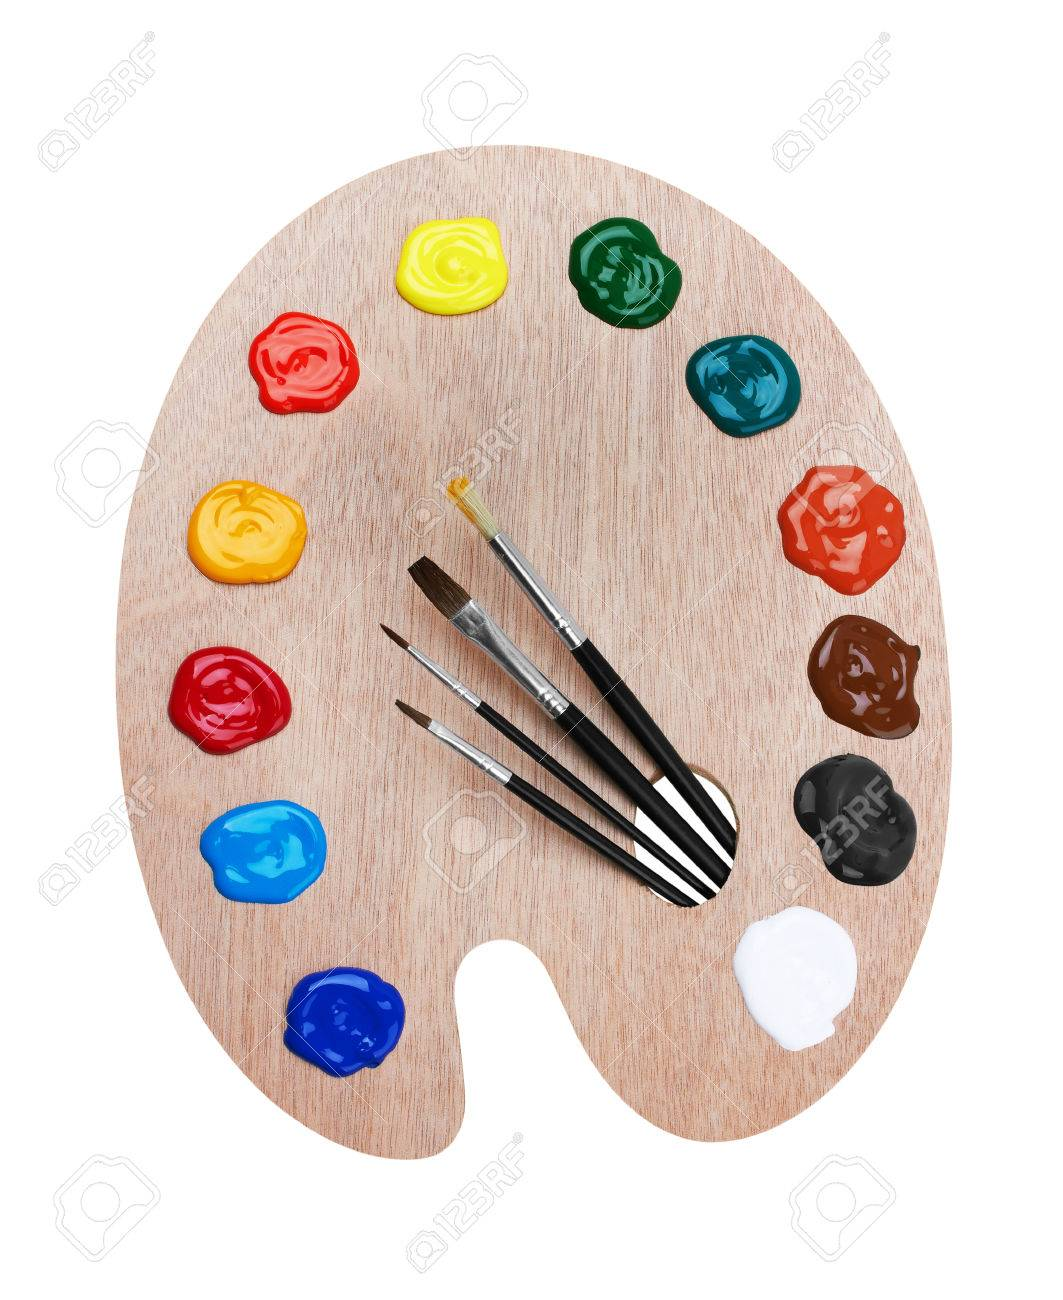 Wooden art palette with paints and brushes, isolated on white background - 48210203